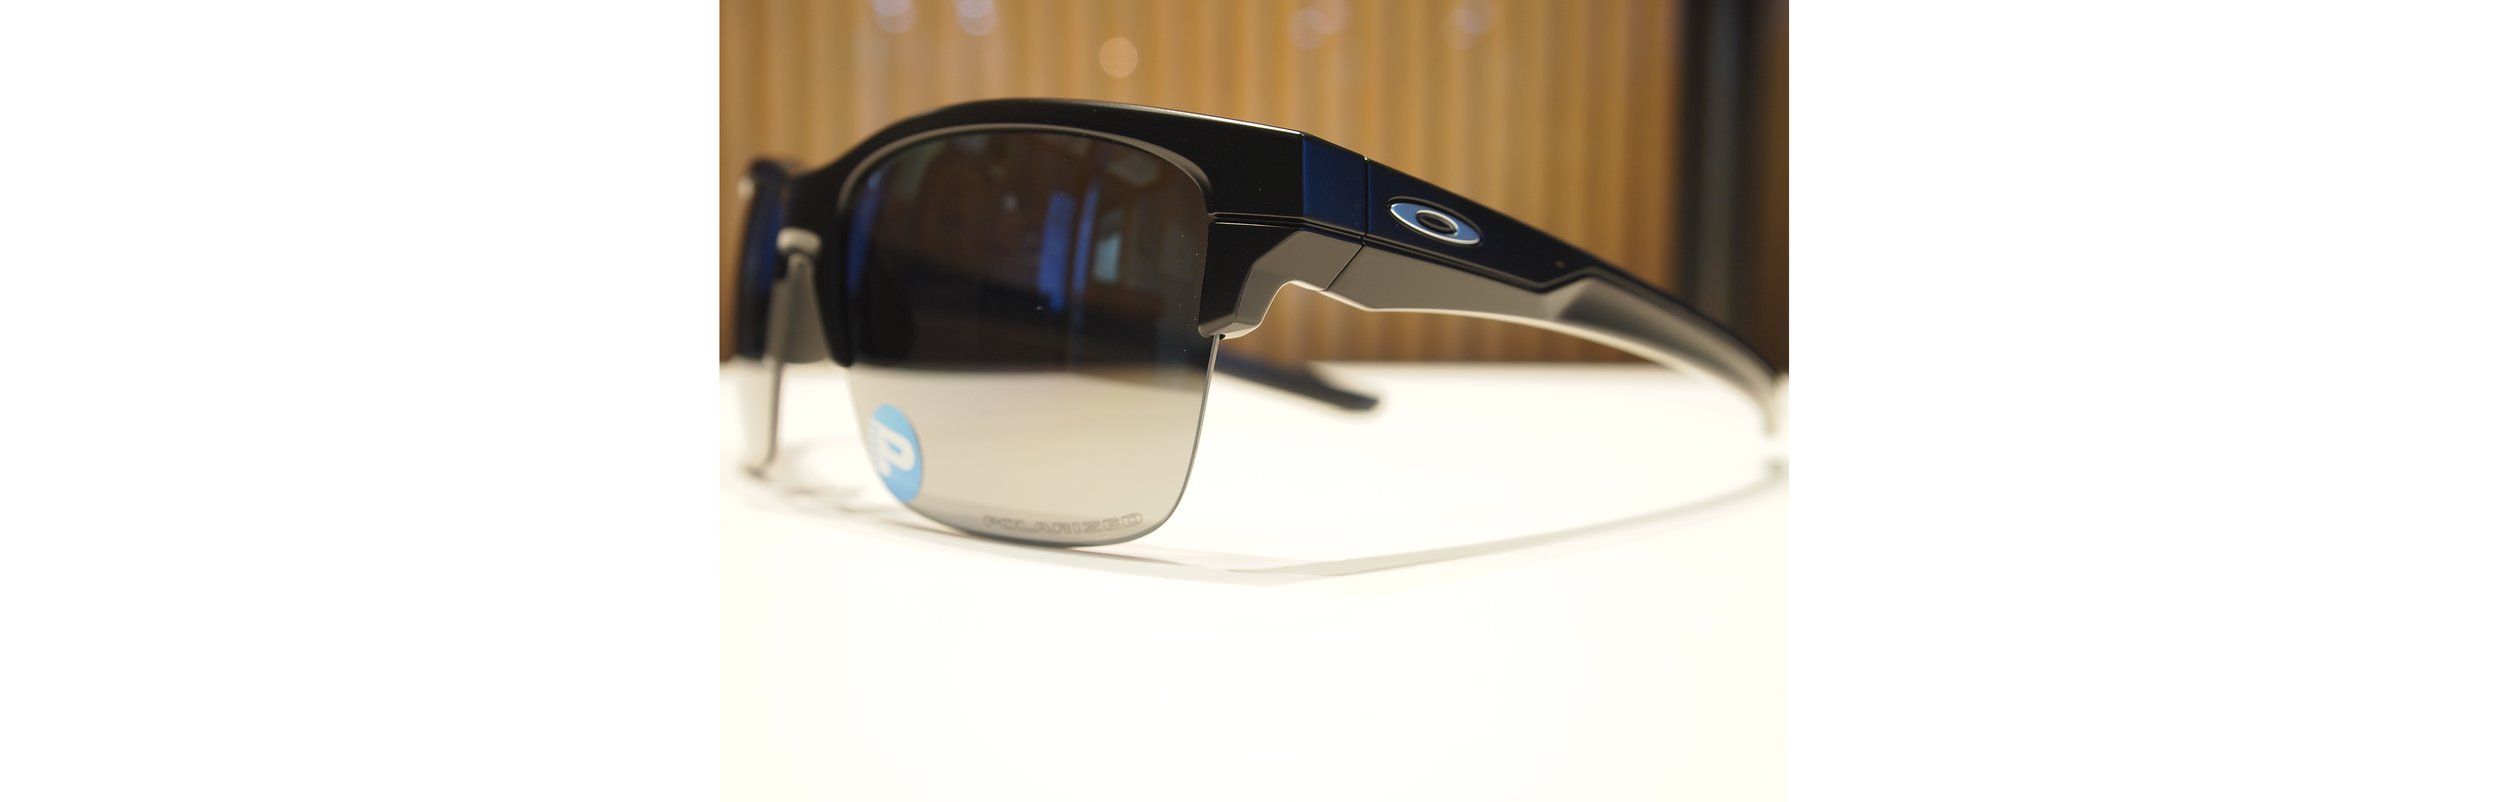 OakleyS 1B - Copy.JPG